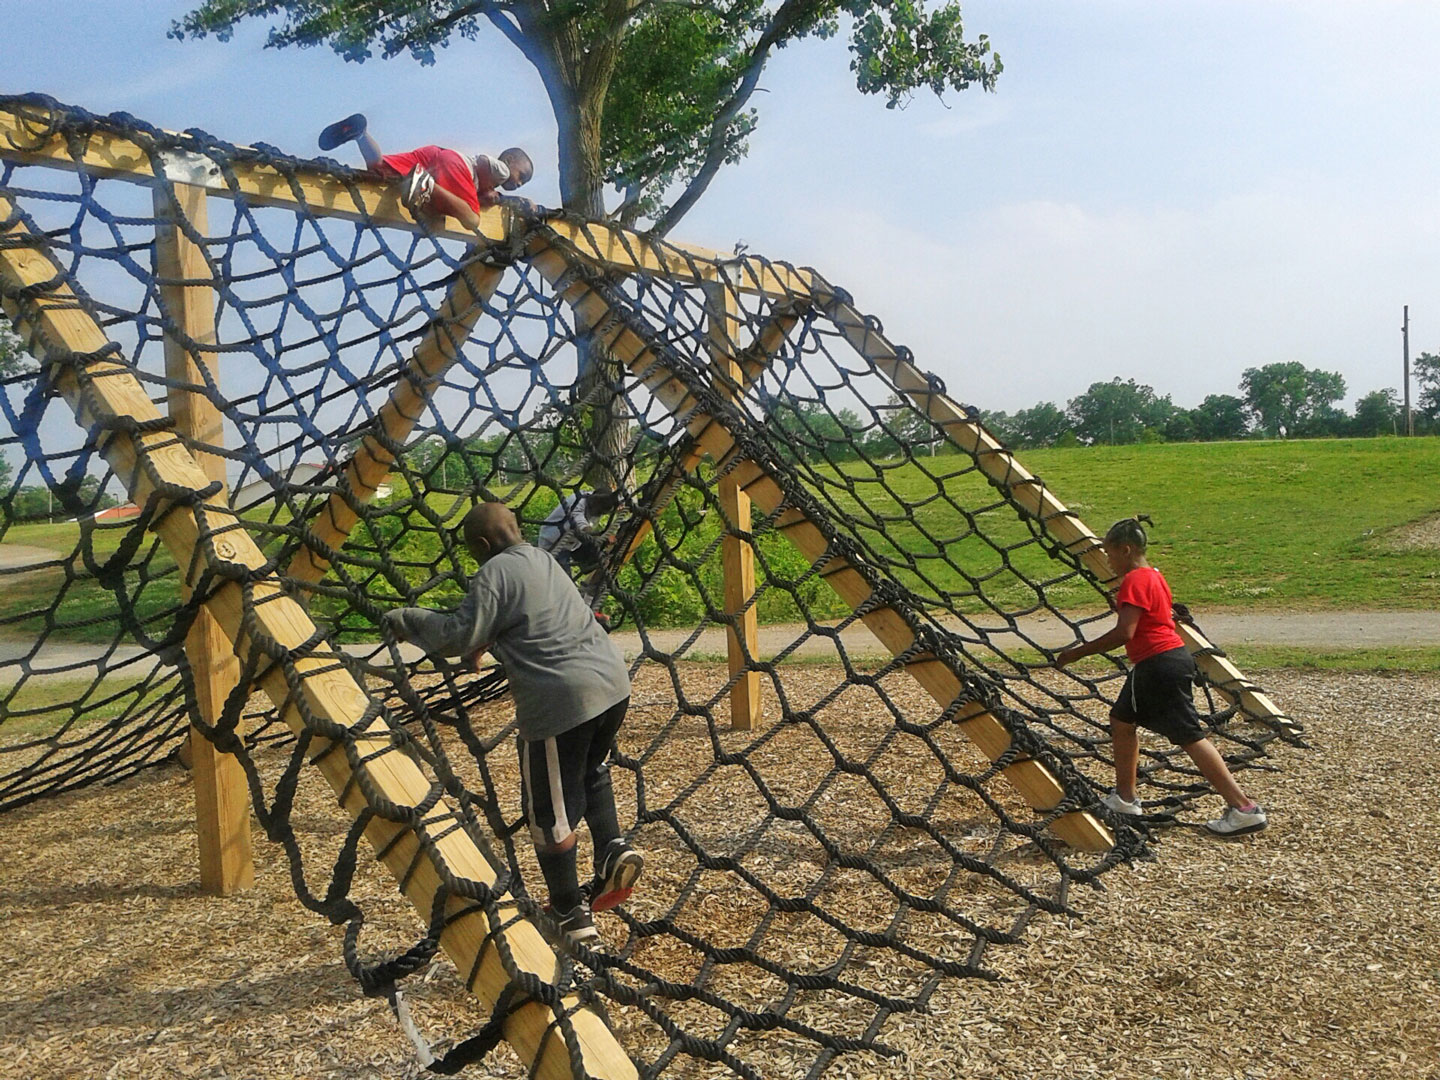 Cargo crawl at obstacle course.